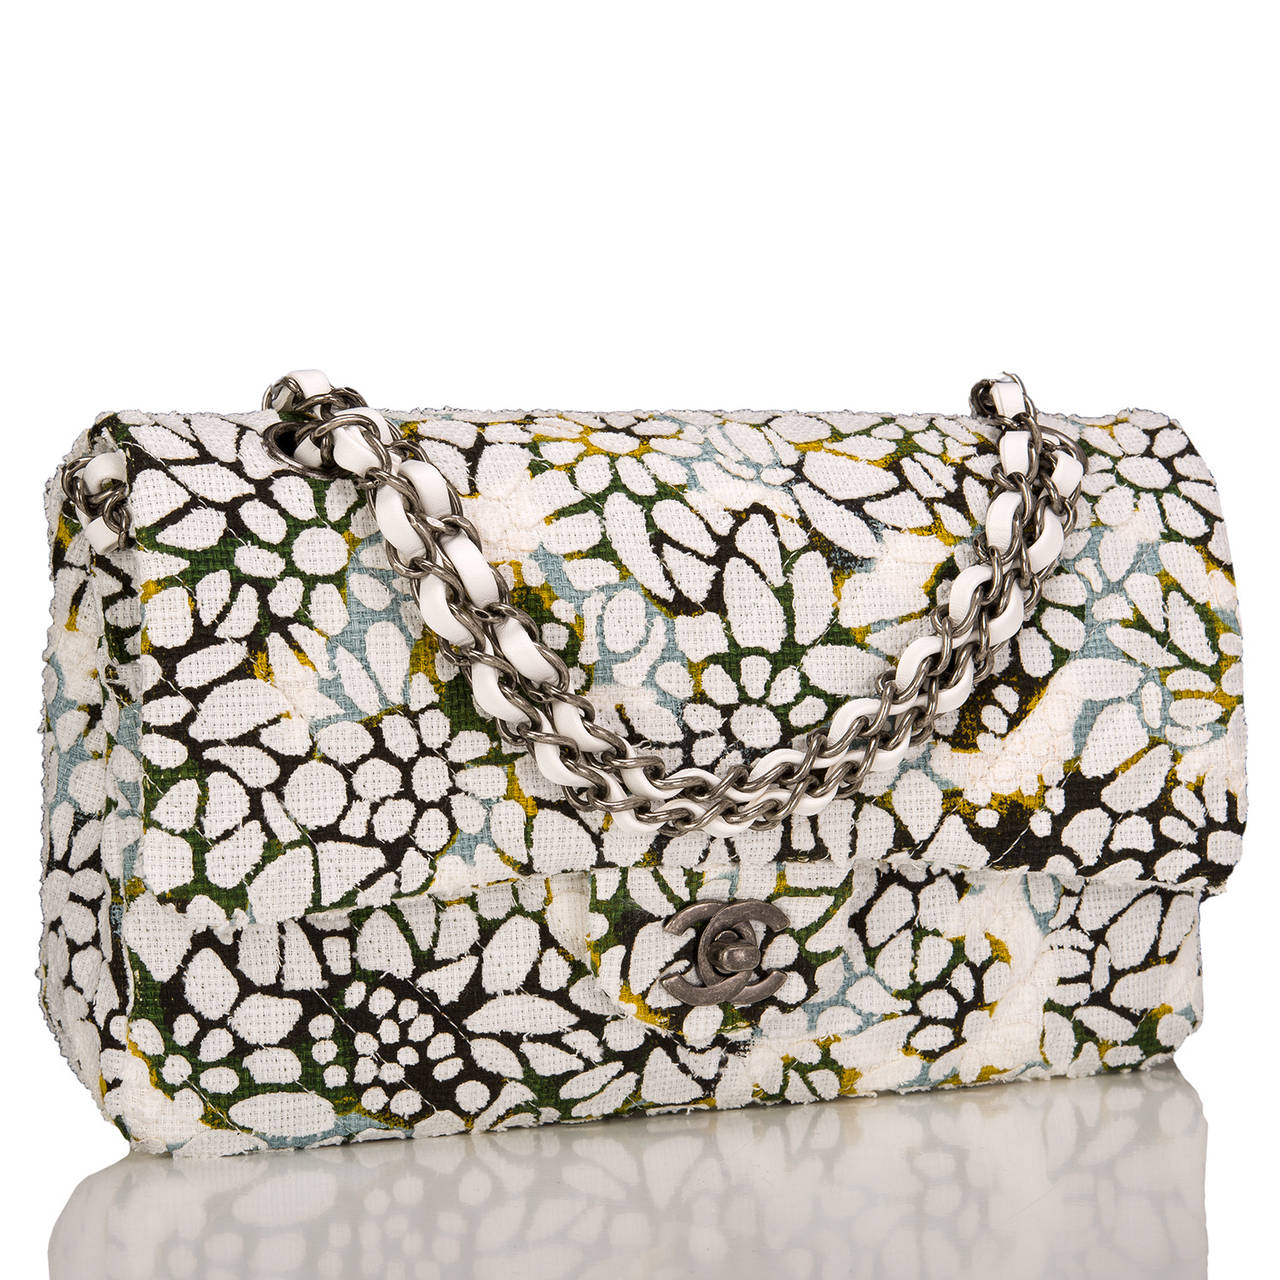 Chanel Medium Classic Double flap bag of multicolor floral textured cotton accented by white leather and aged ruthenium hardware.  This limited edition bag features a front flap with signature CC turnlock closure, half moon back pocket, and an